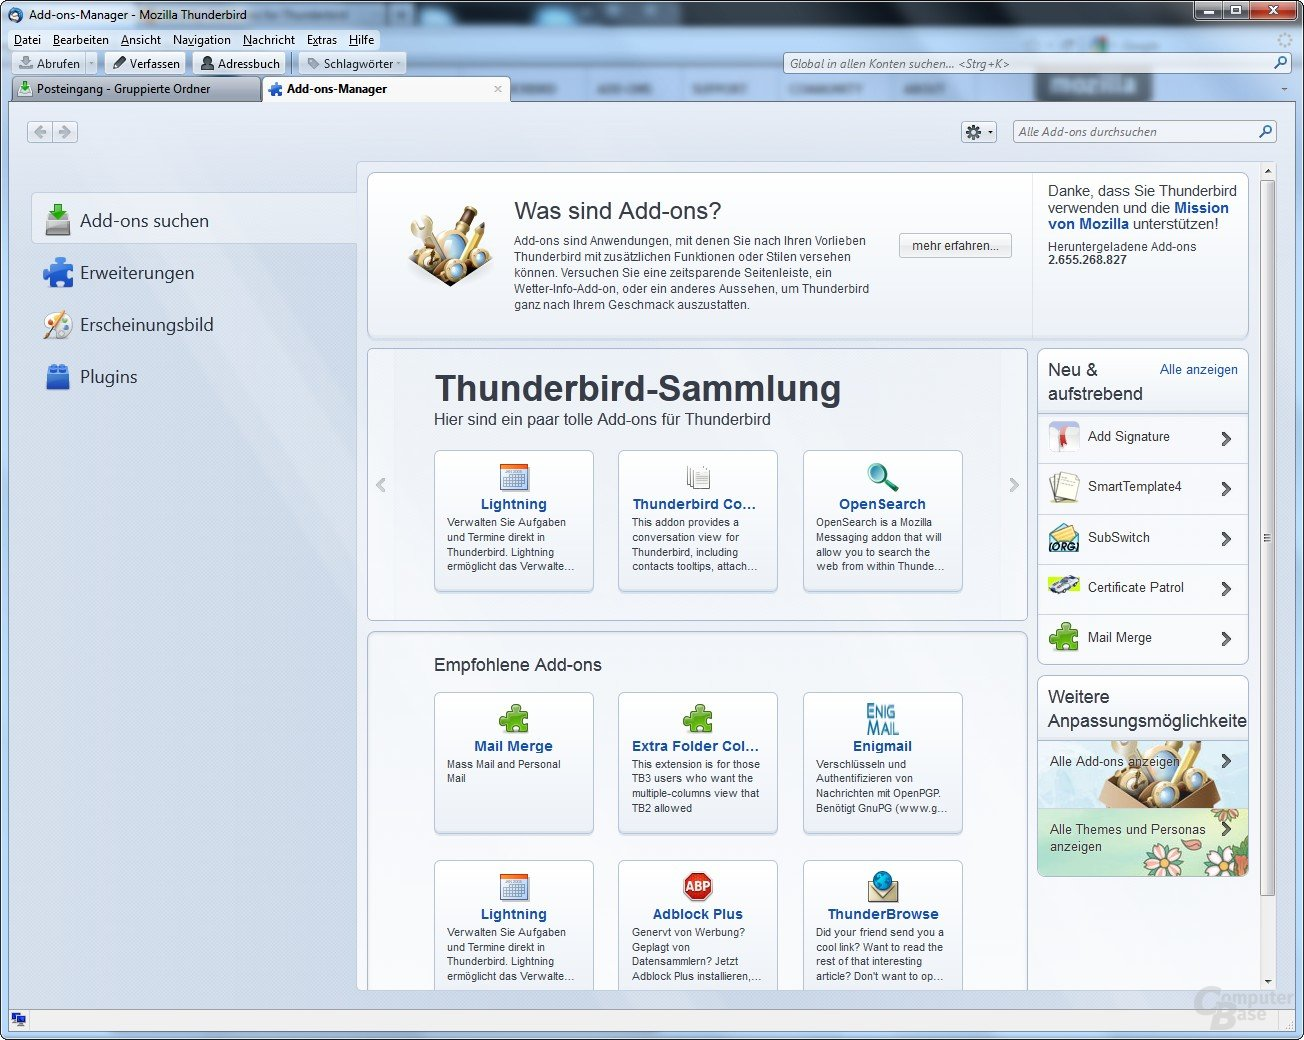 Thunderbird 7: Add-ons-Manager